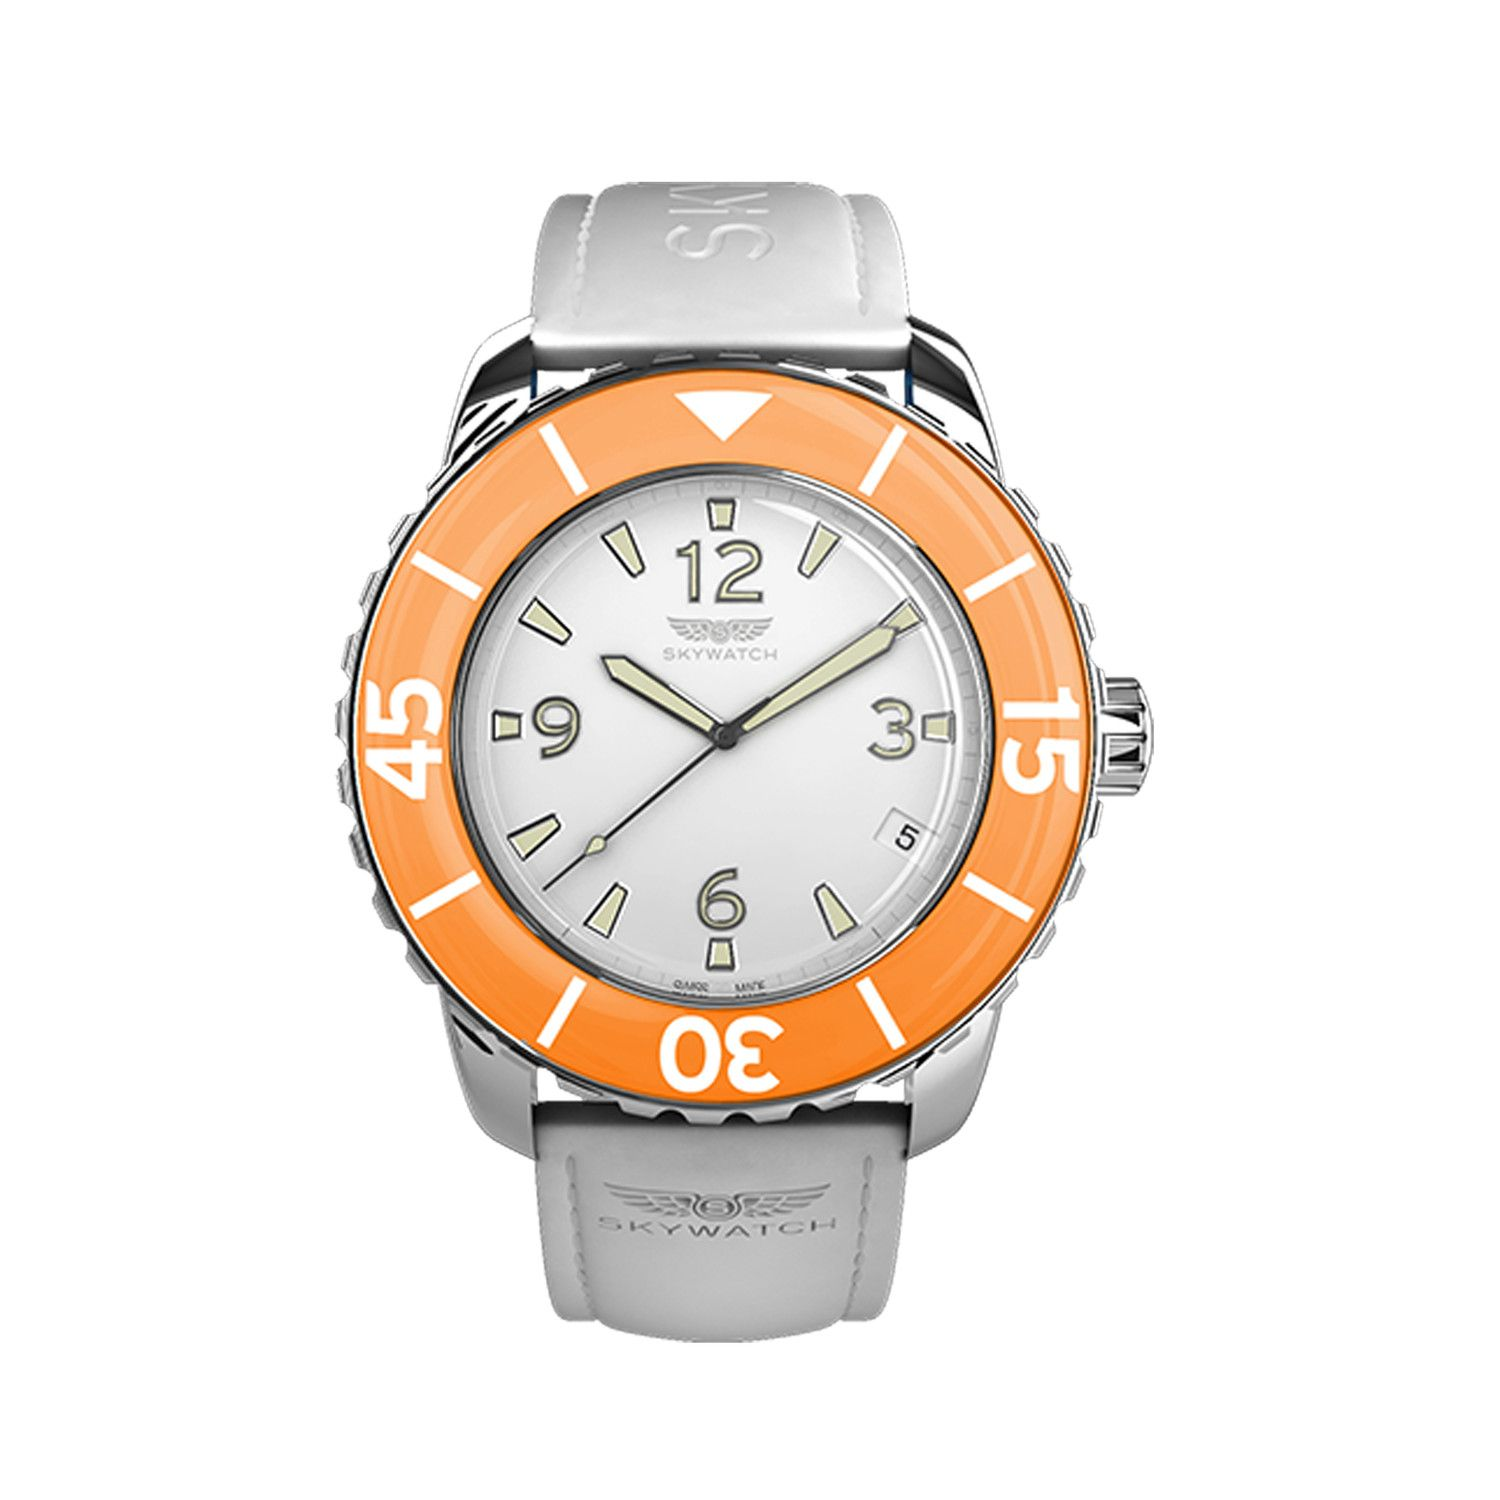 A white and orange watch!? I'm obsessed! Chris would love this